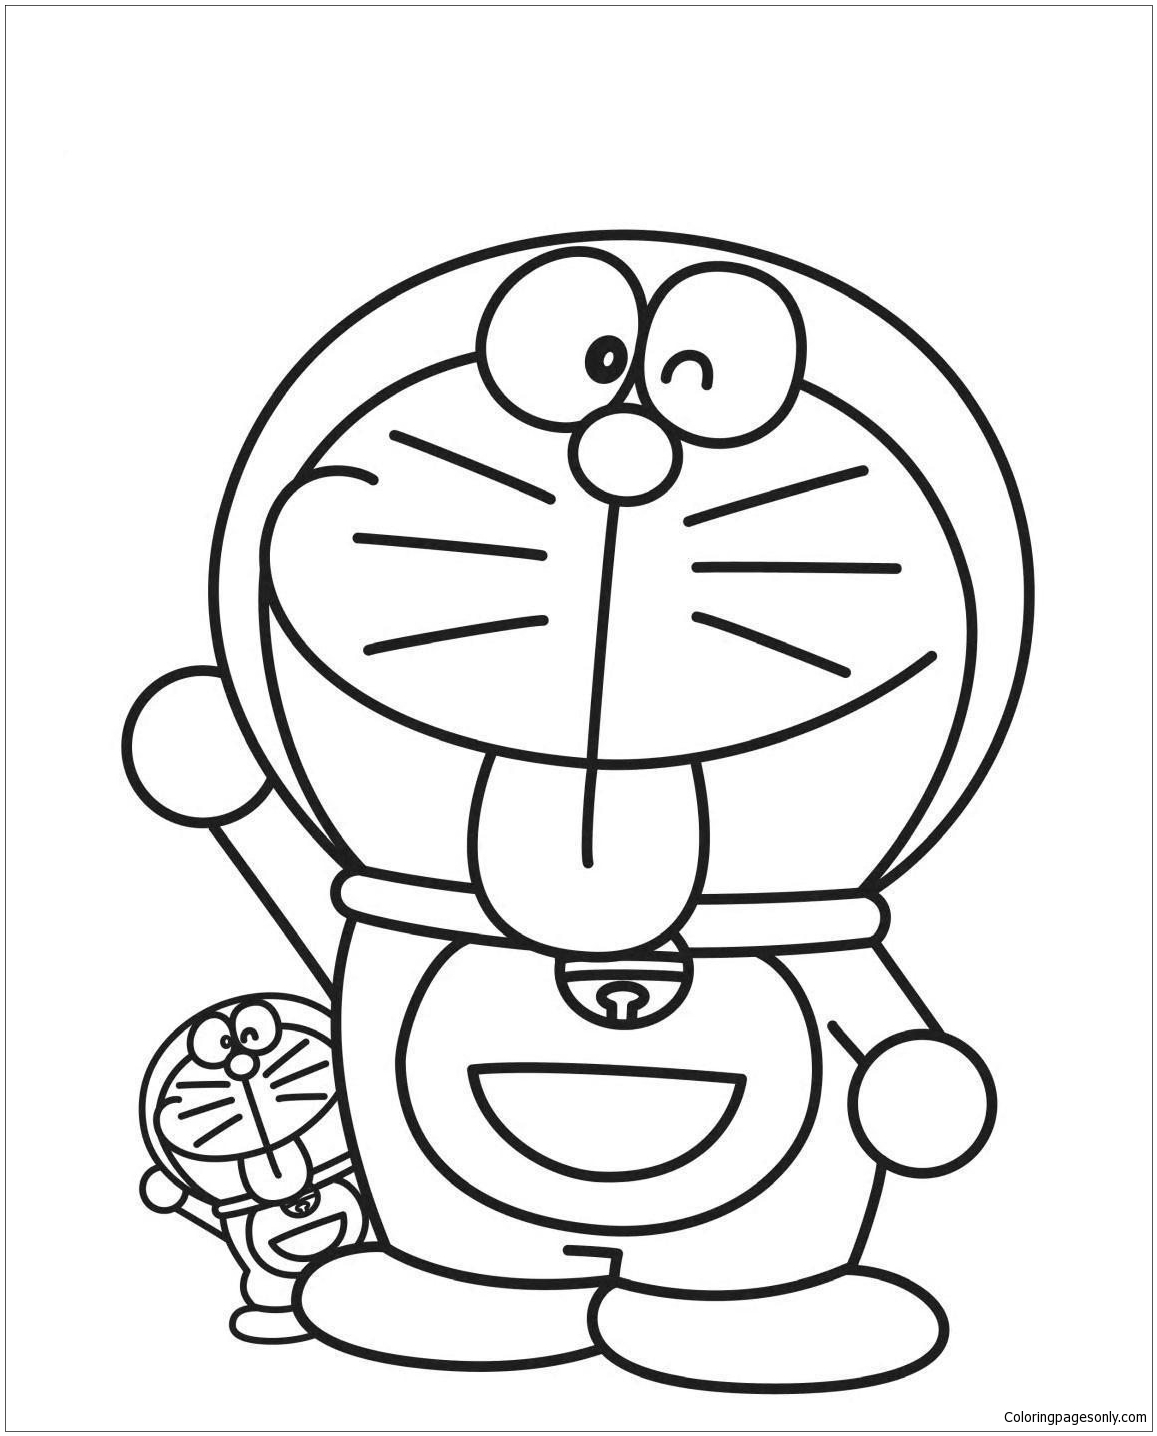 Big And Little Doraemon Coloring Page